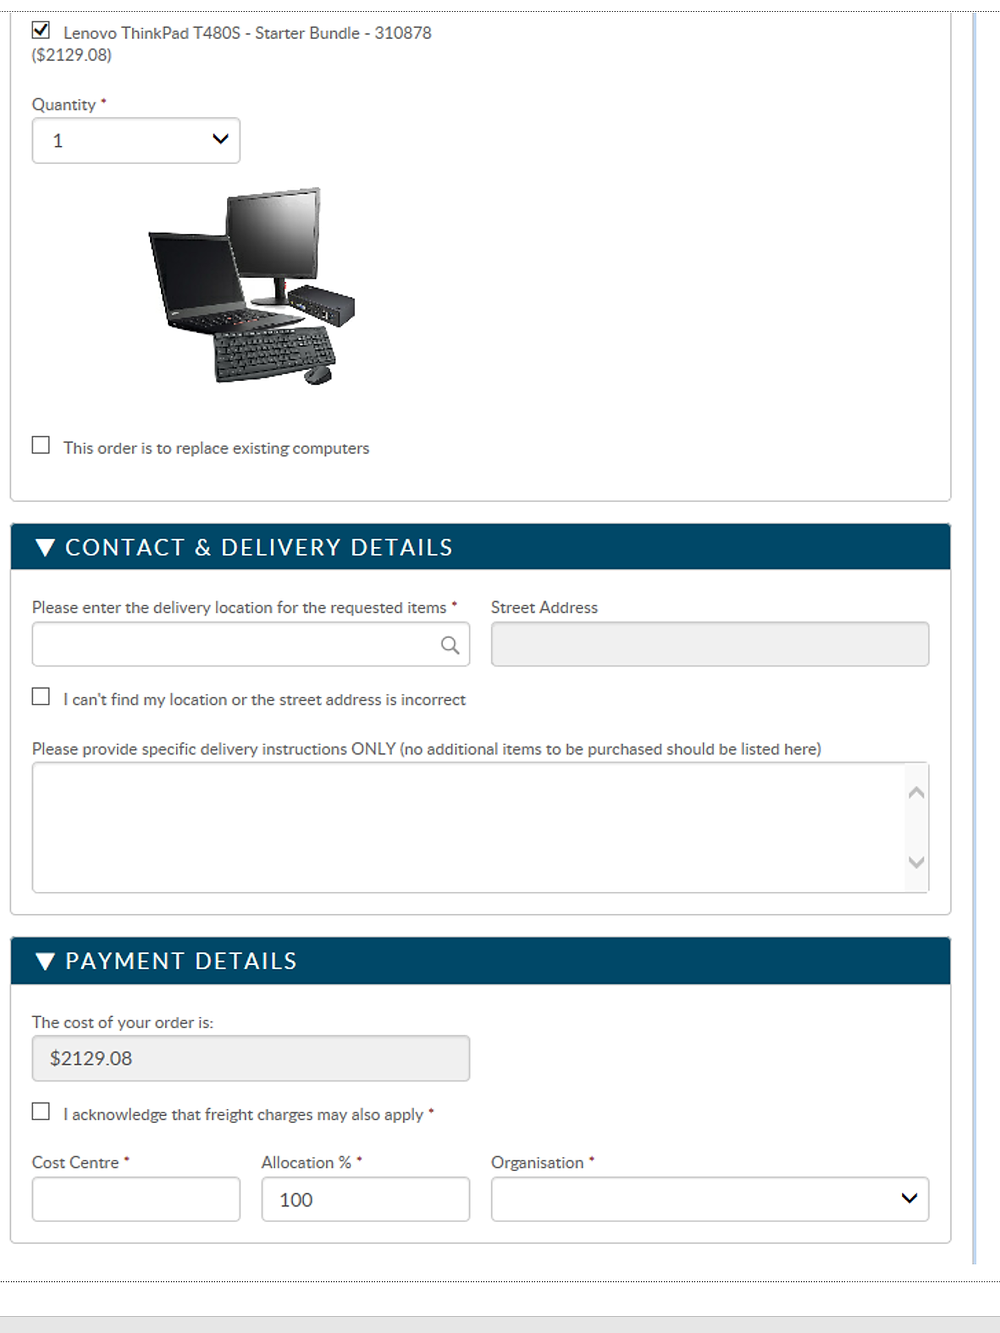 A sample onboarding form